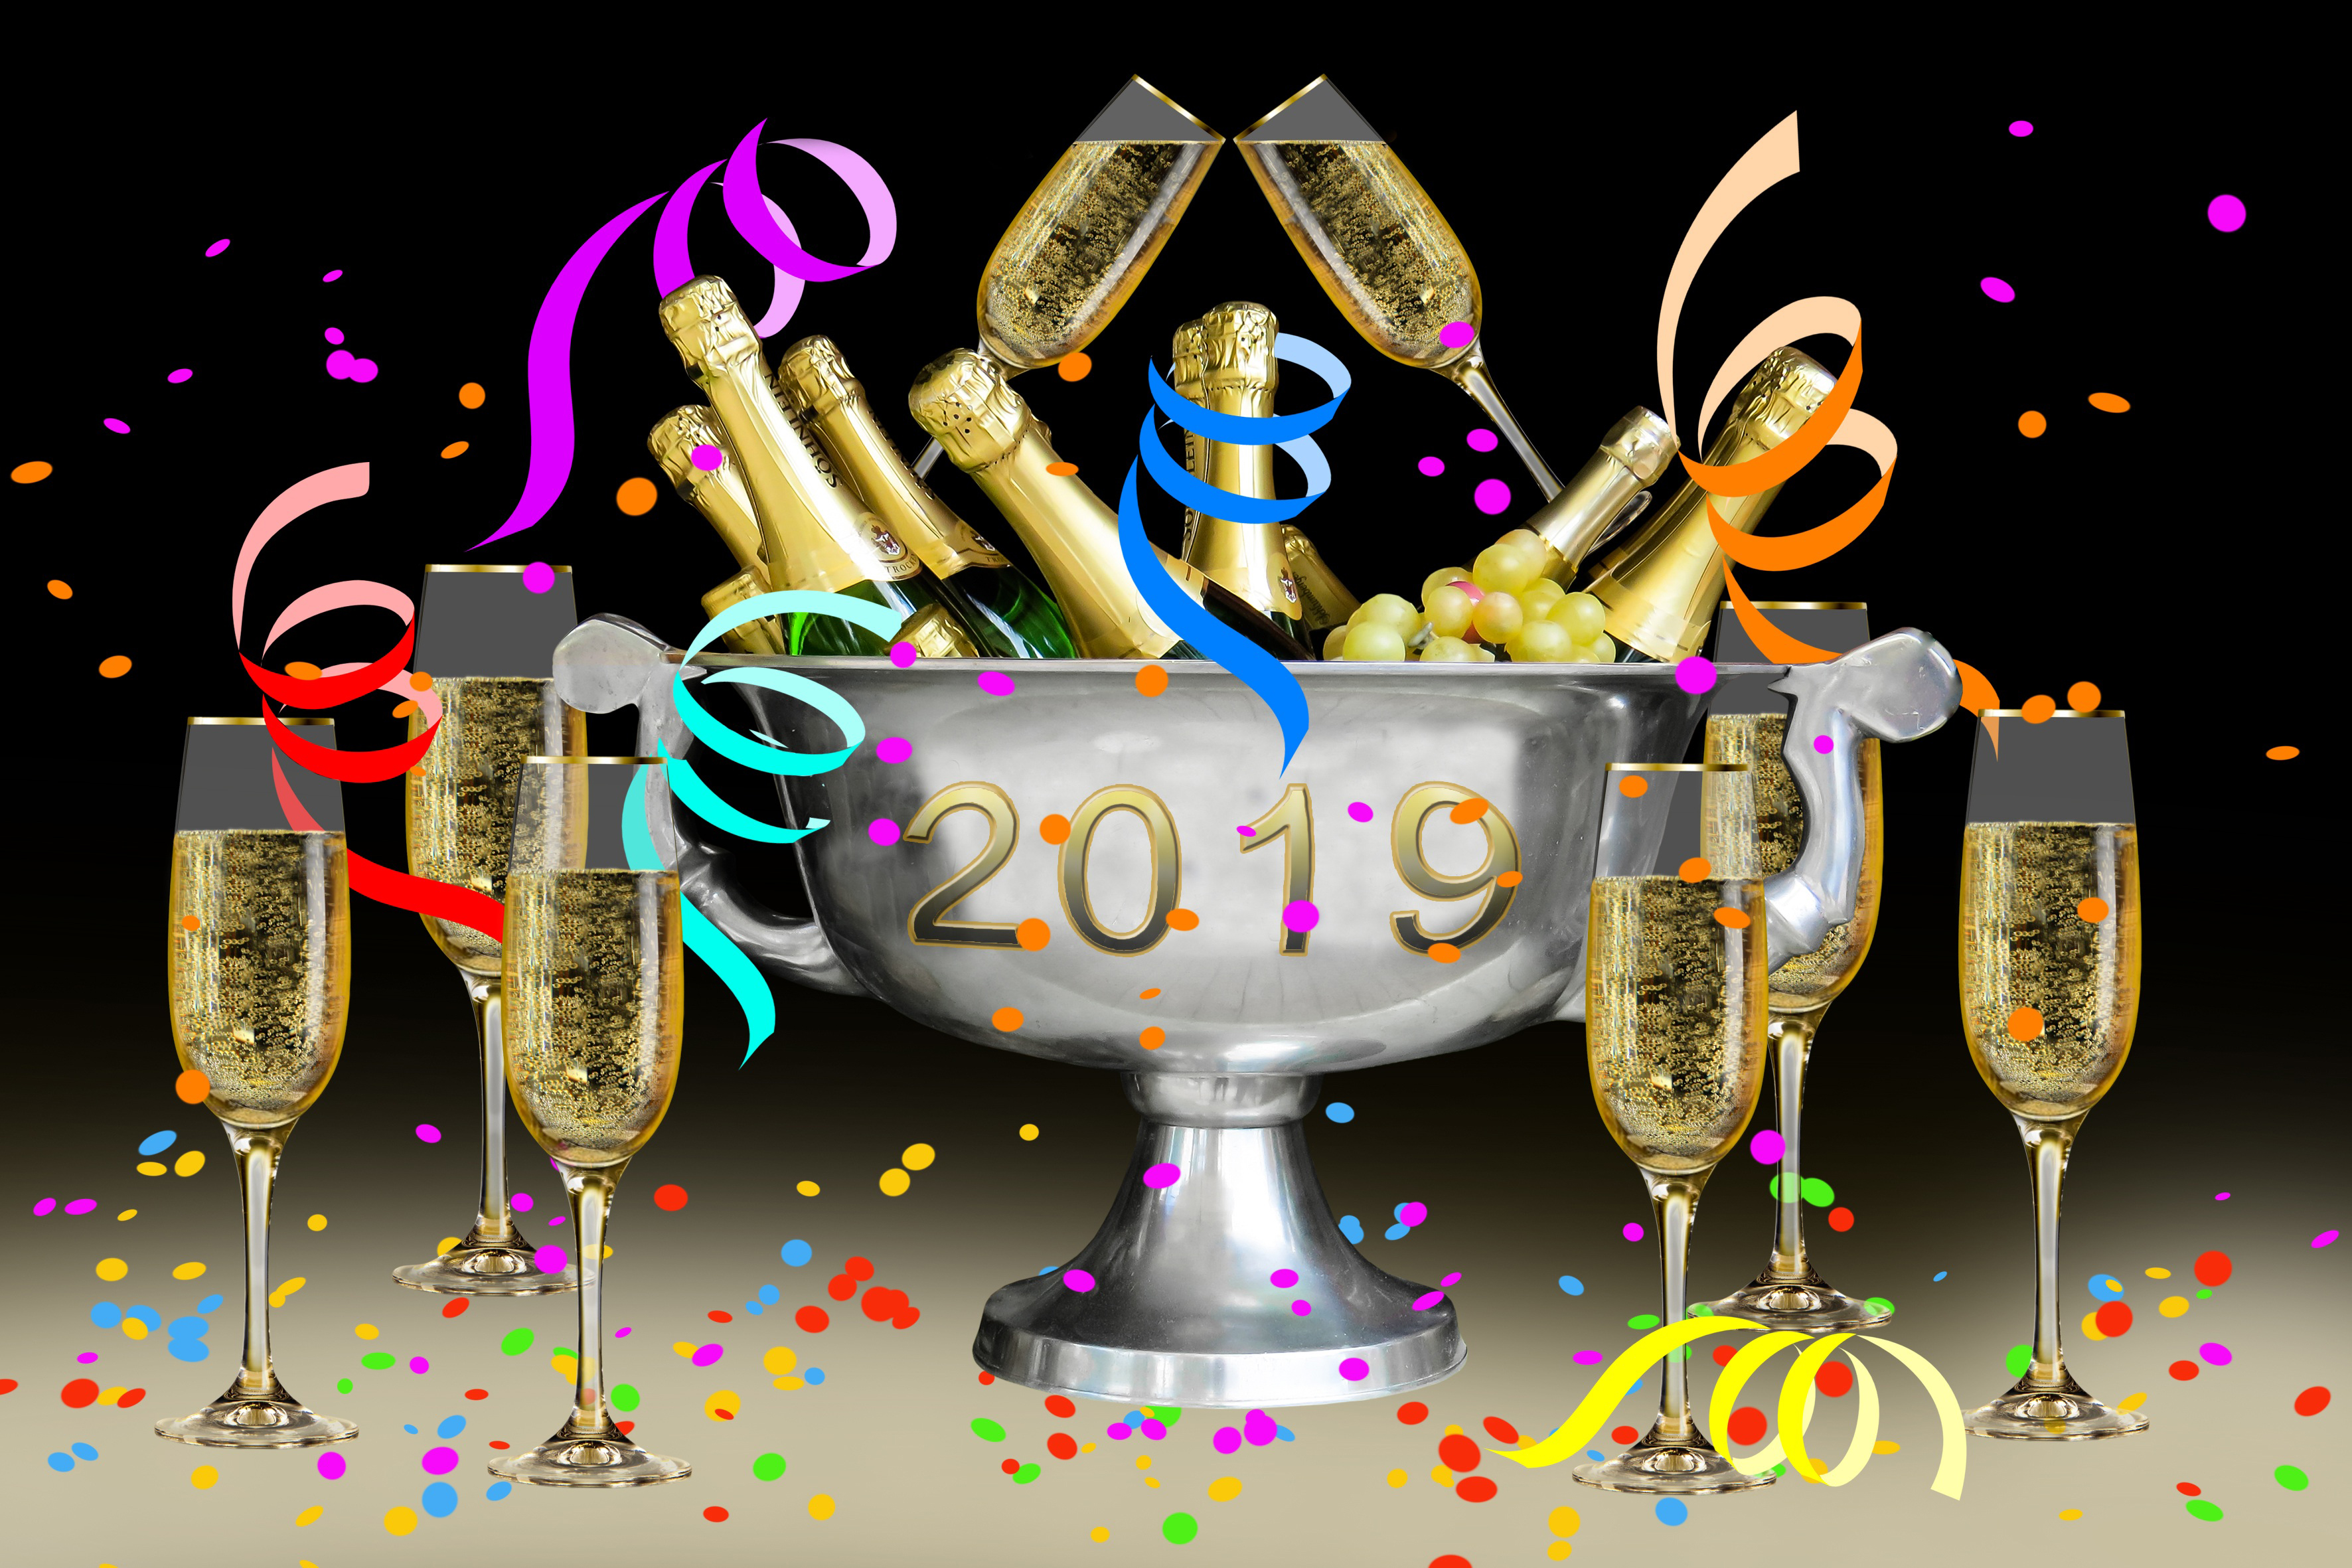 new year party ,2019,festival,luck,bucket, wine